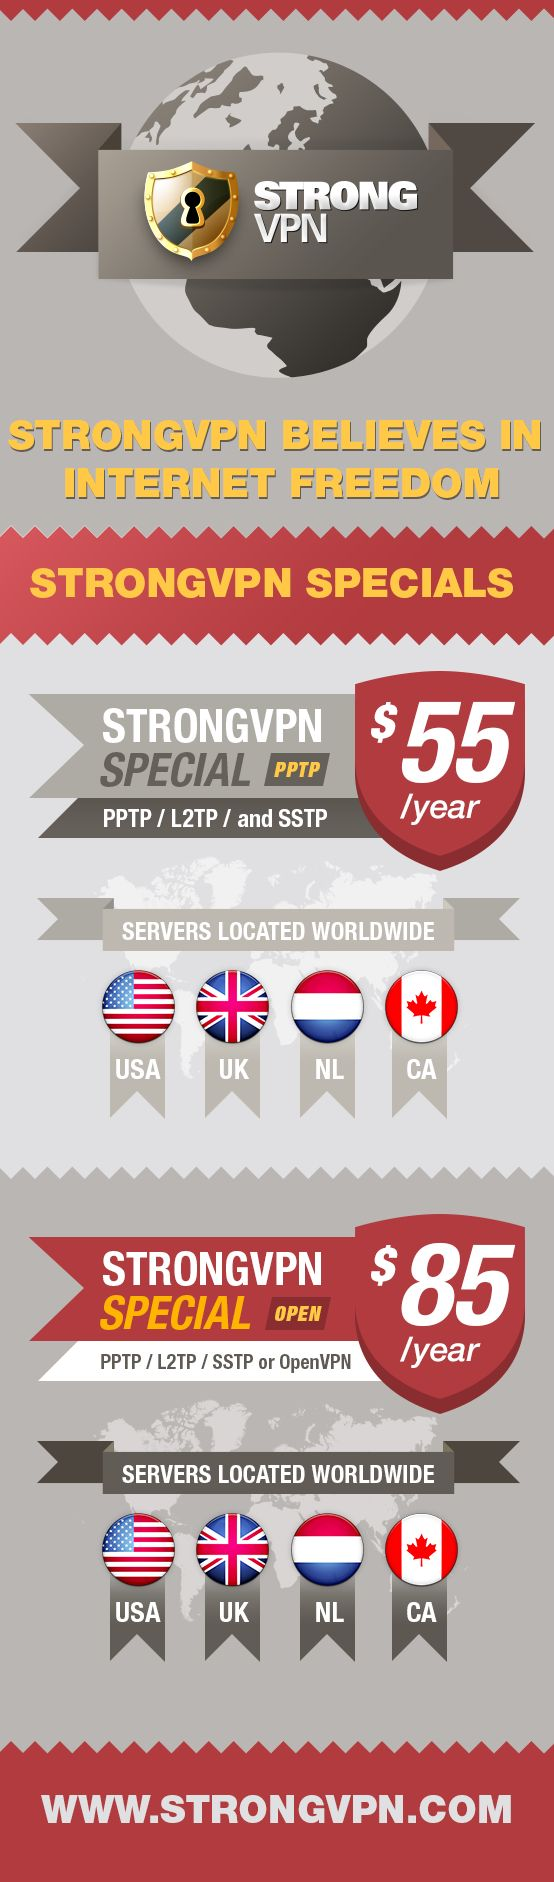 StrongVPN Special Packages Signed up last year and loved it. Allows watching of my favourite us tv series on Hulu!